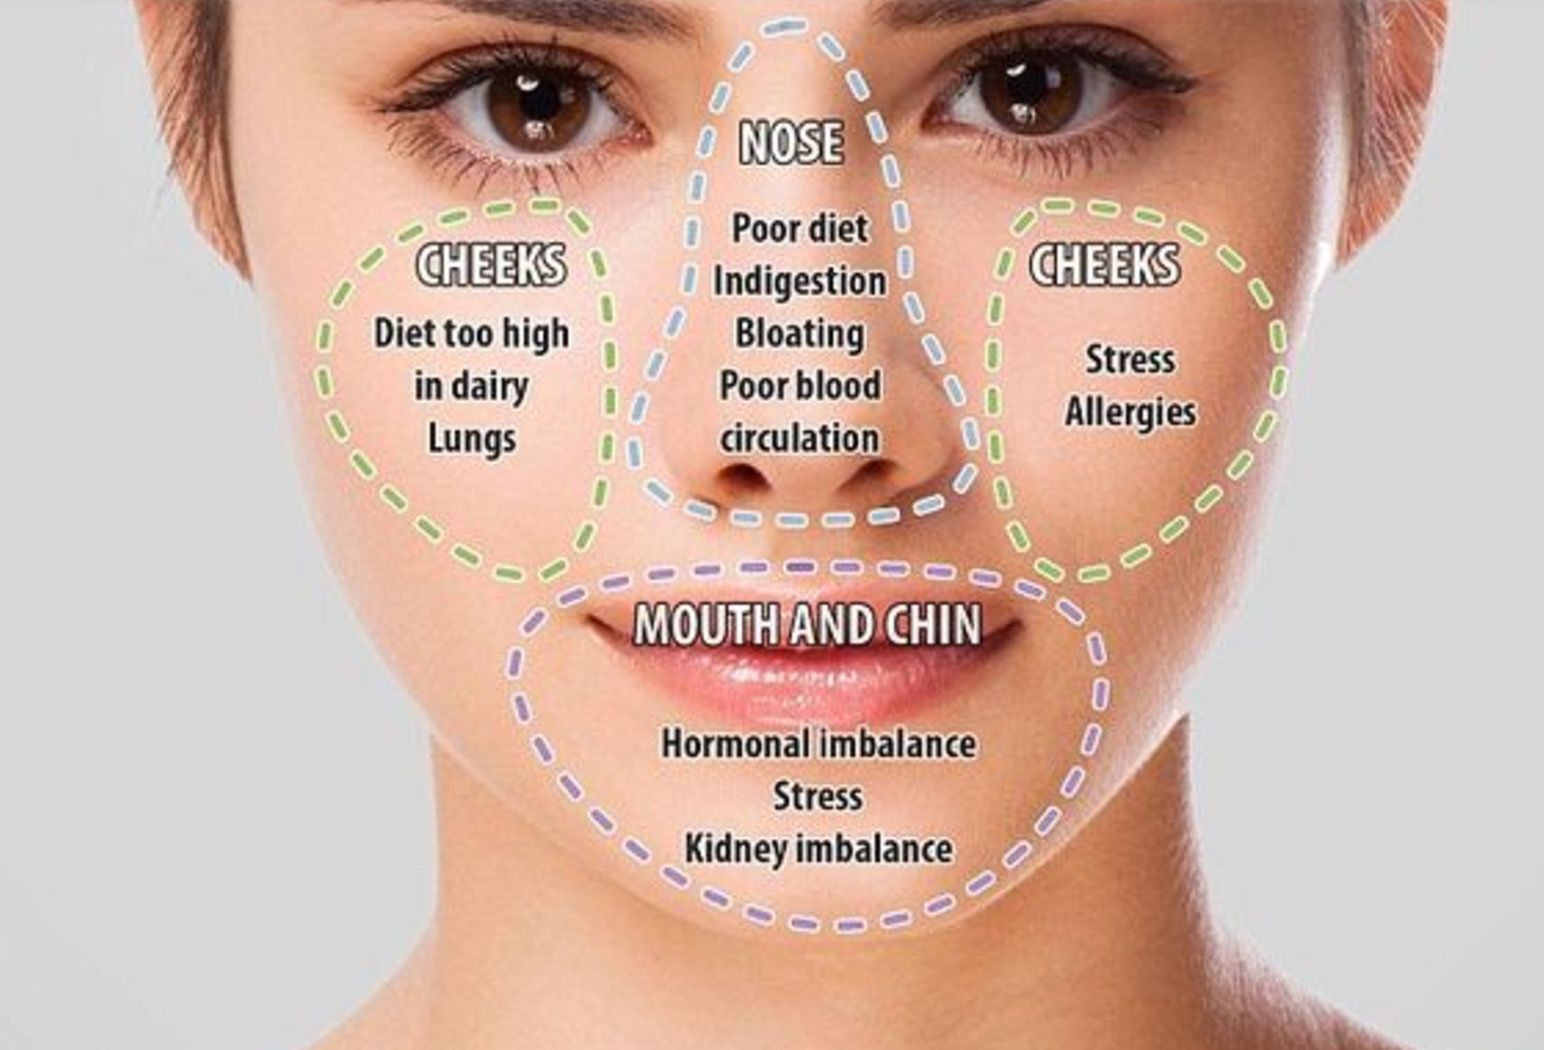 Chinese Face Mapping Skin Analysis  Face Mapping, Face -4032